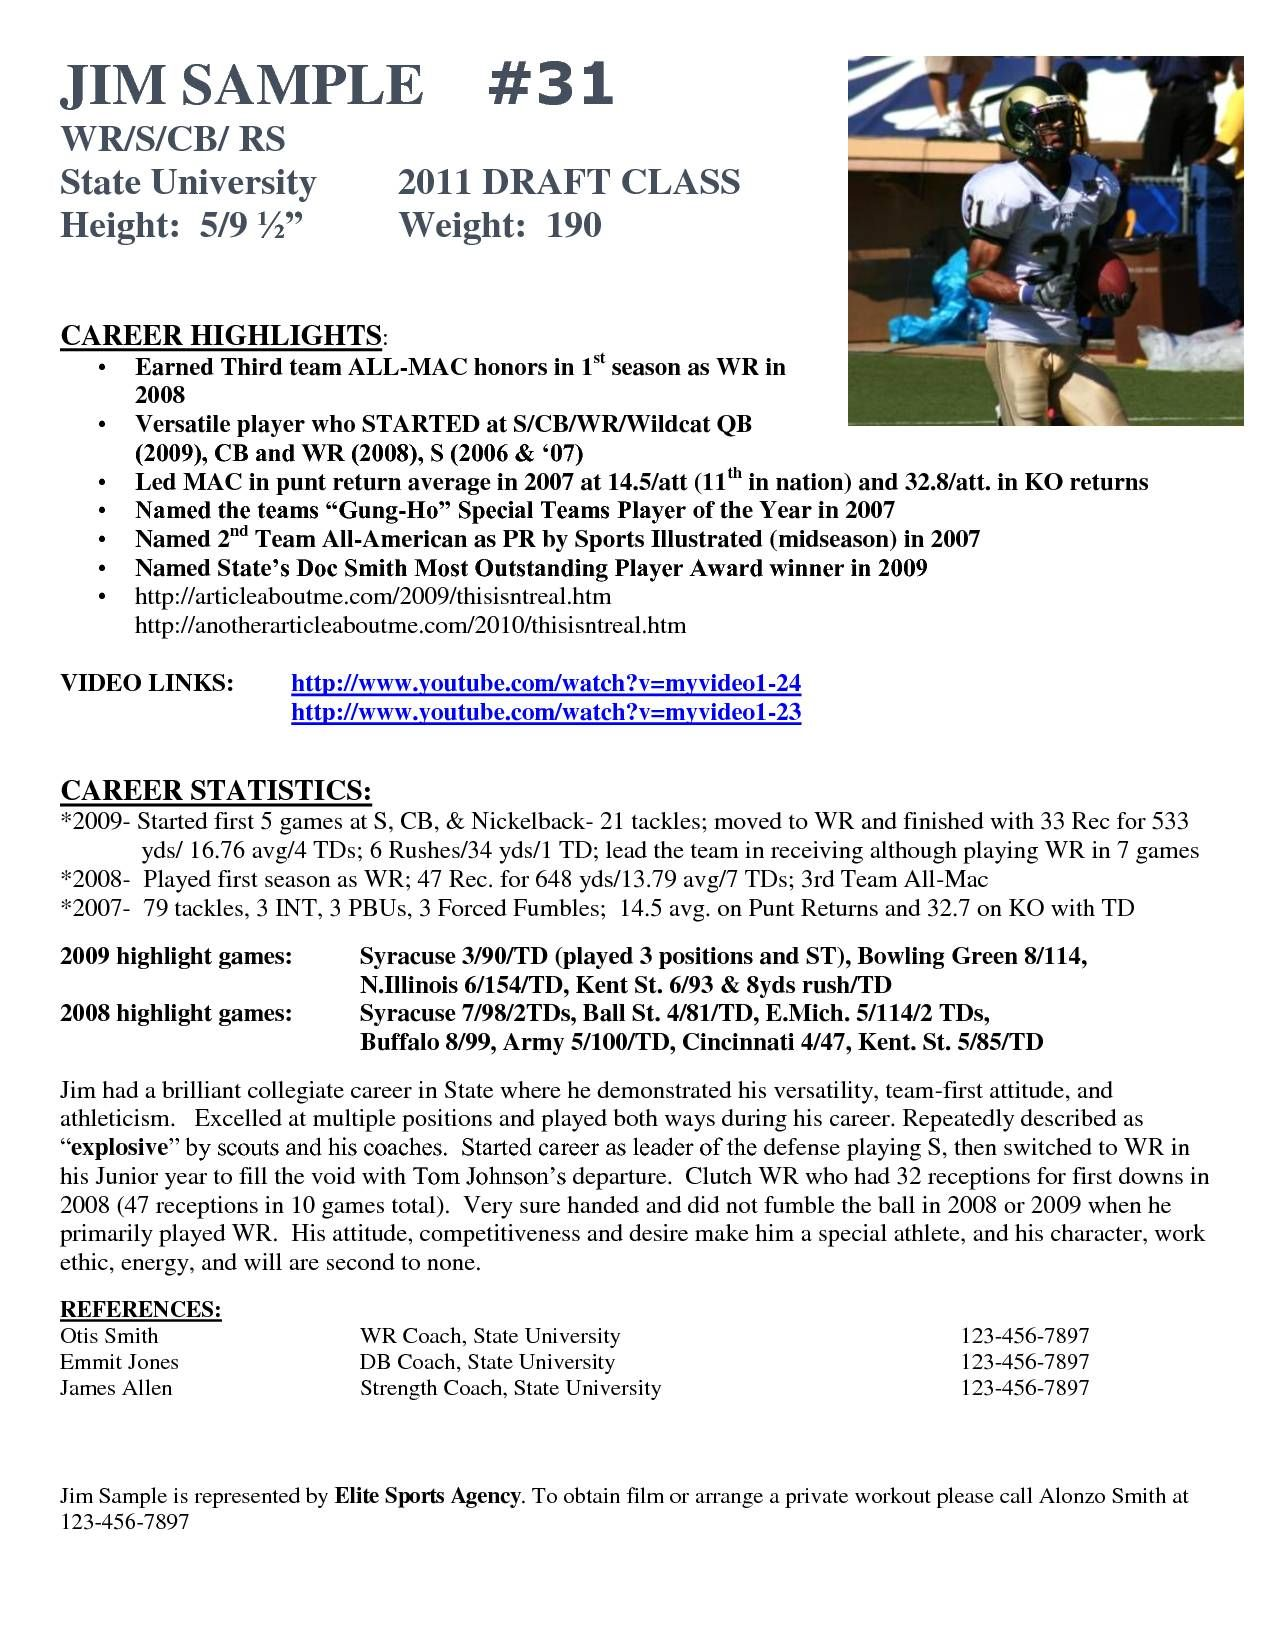 Hockey Player Resume Template Best Of Football Resume Insrenterprises Socalbrowncoats Soccer Coaching Resume Template Resume